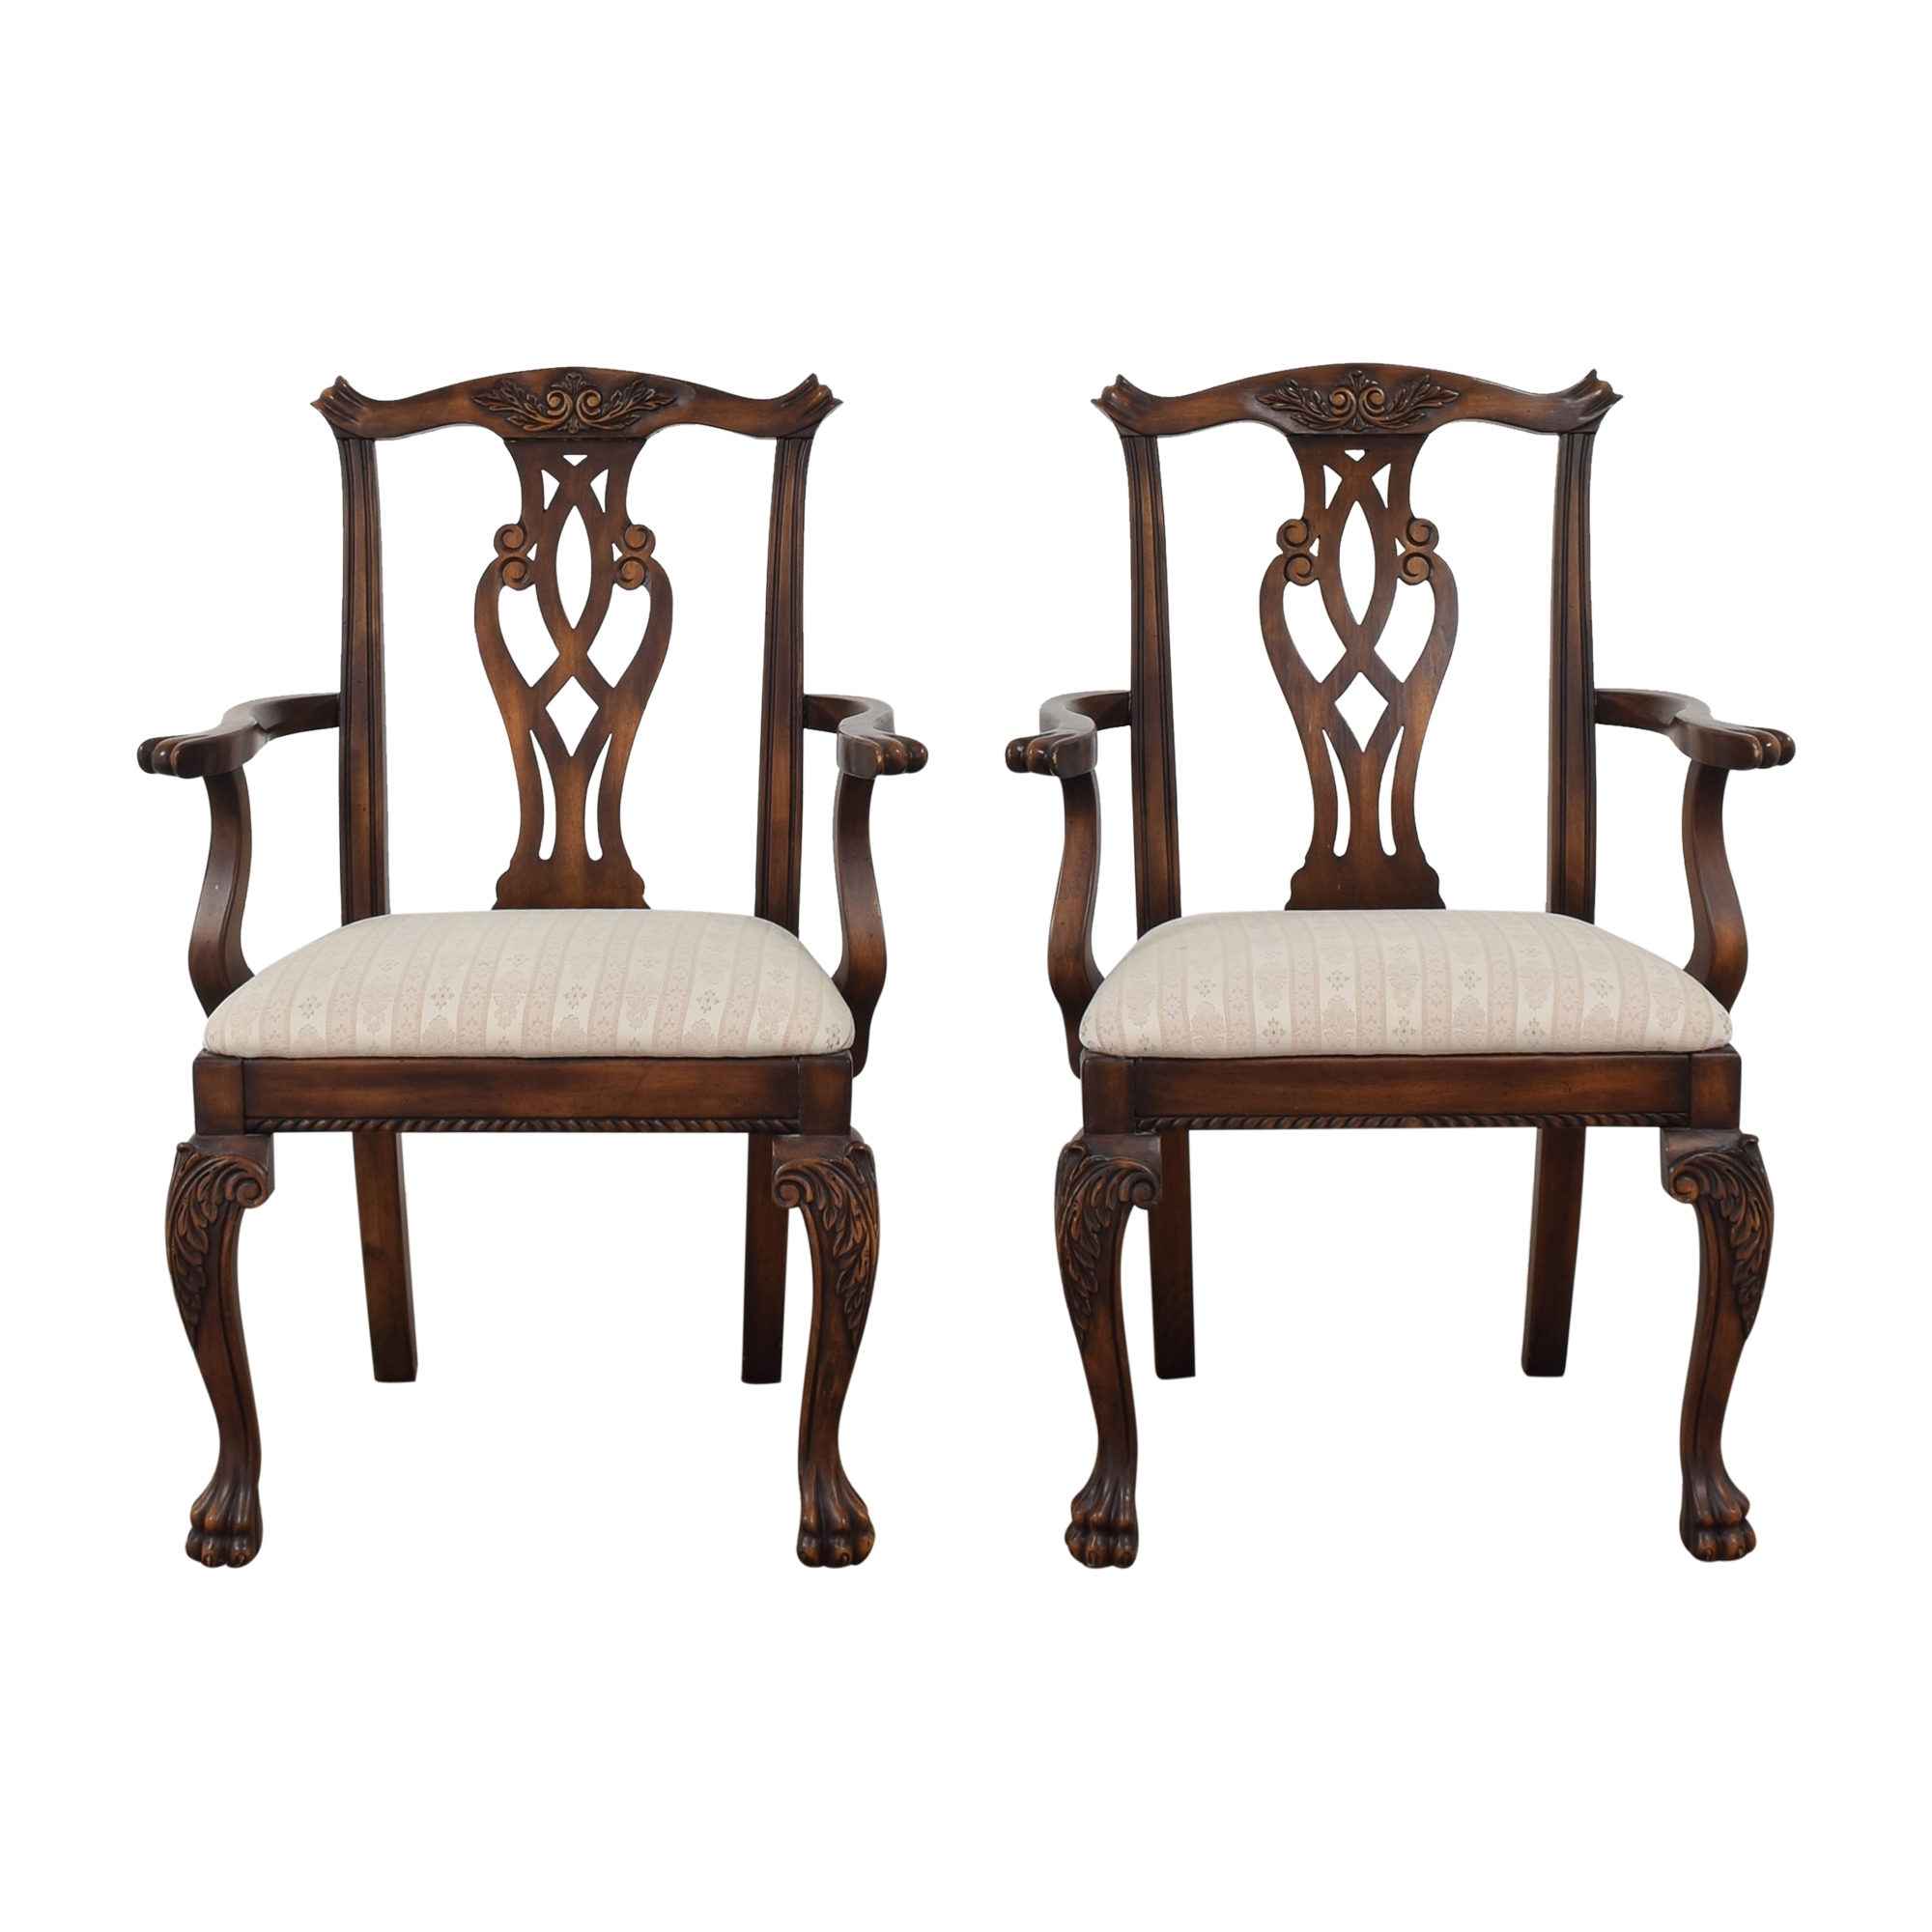 Regency Regency House Dining Arm Chairs Dining Chairs